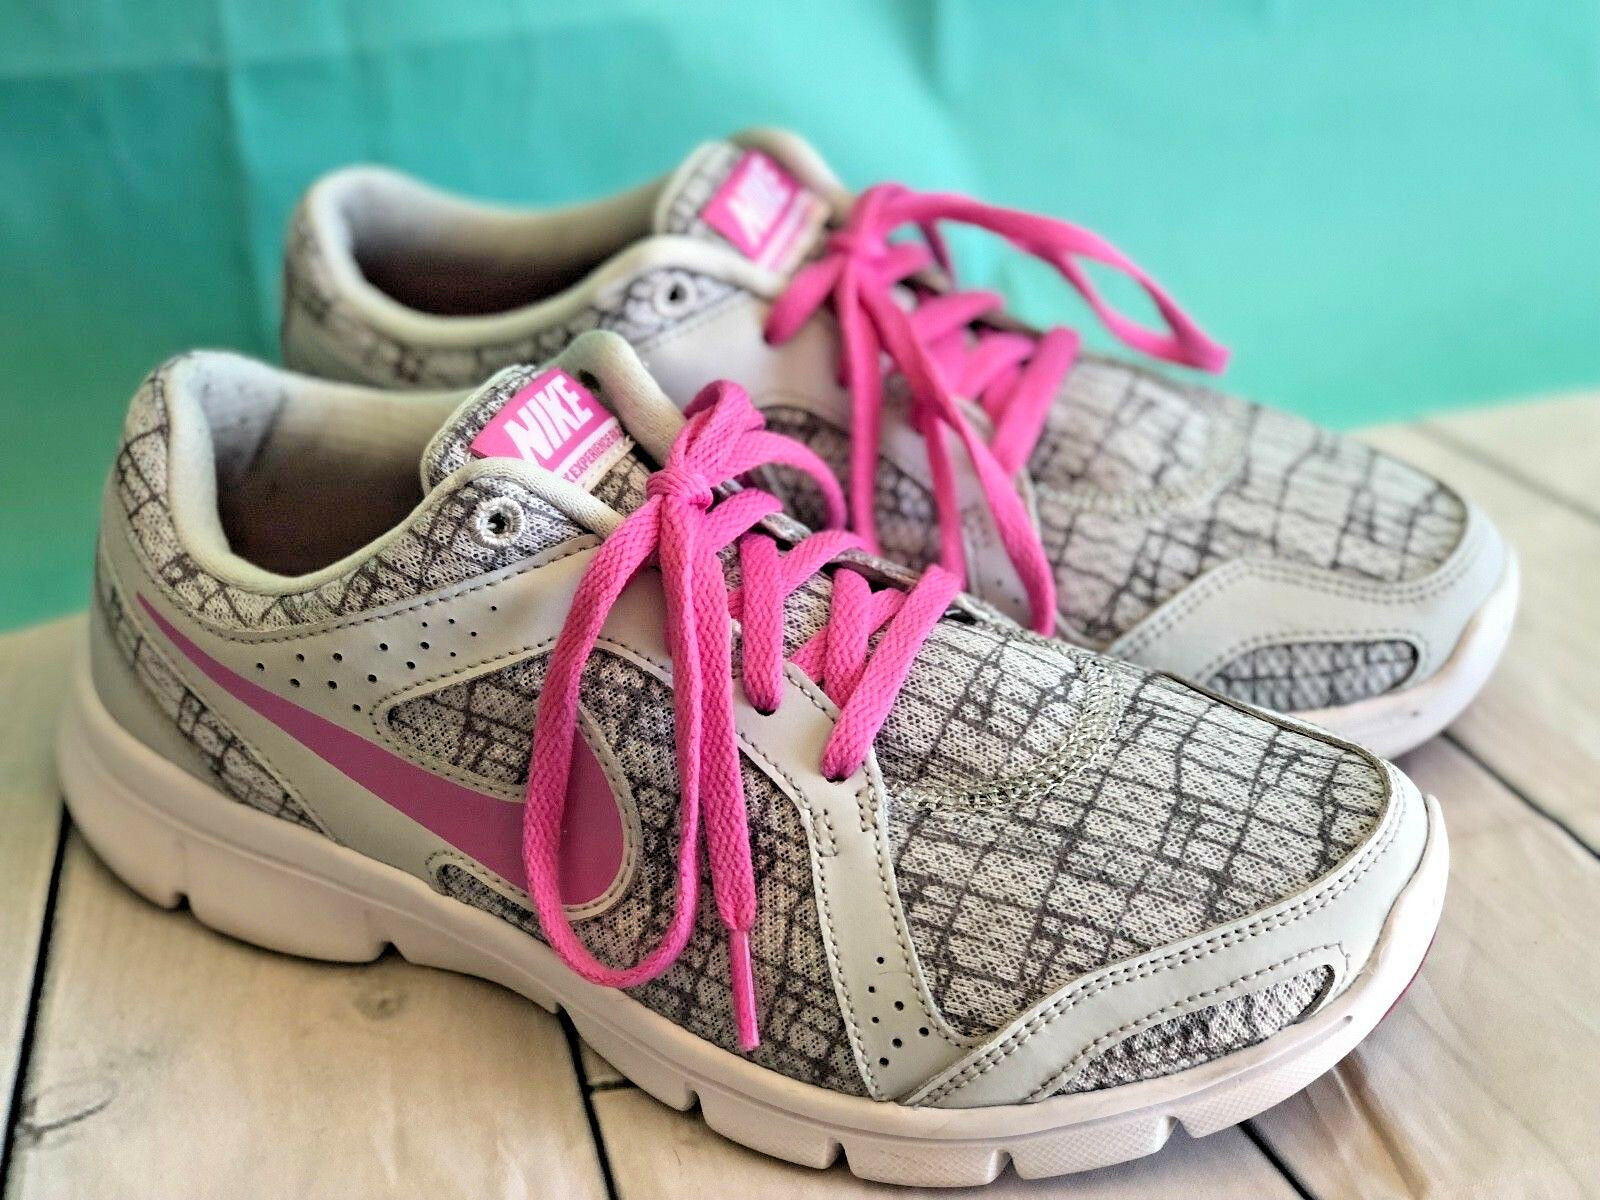 Nike Flex Experience Run 2 Wmns Running Shoes  Gray Metalic Lavende Pink  Shoes 8 0406fb